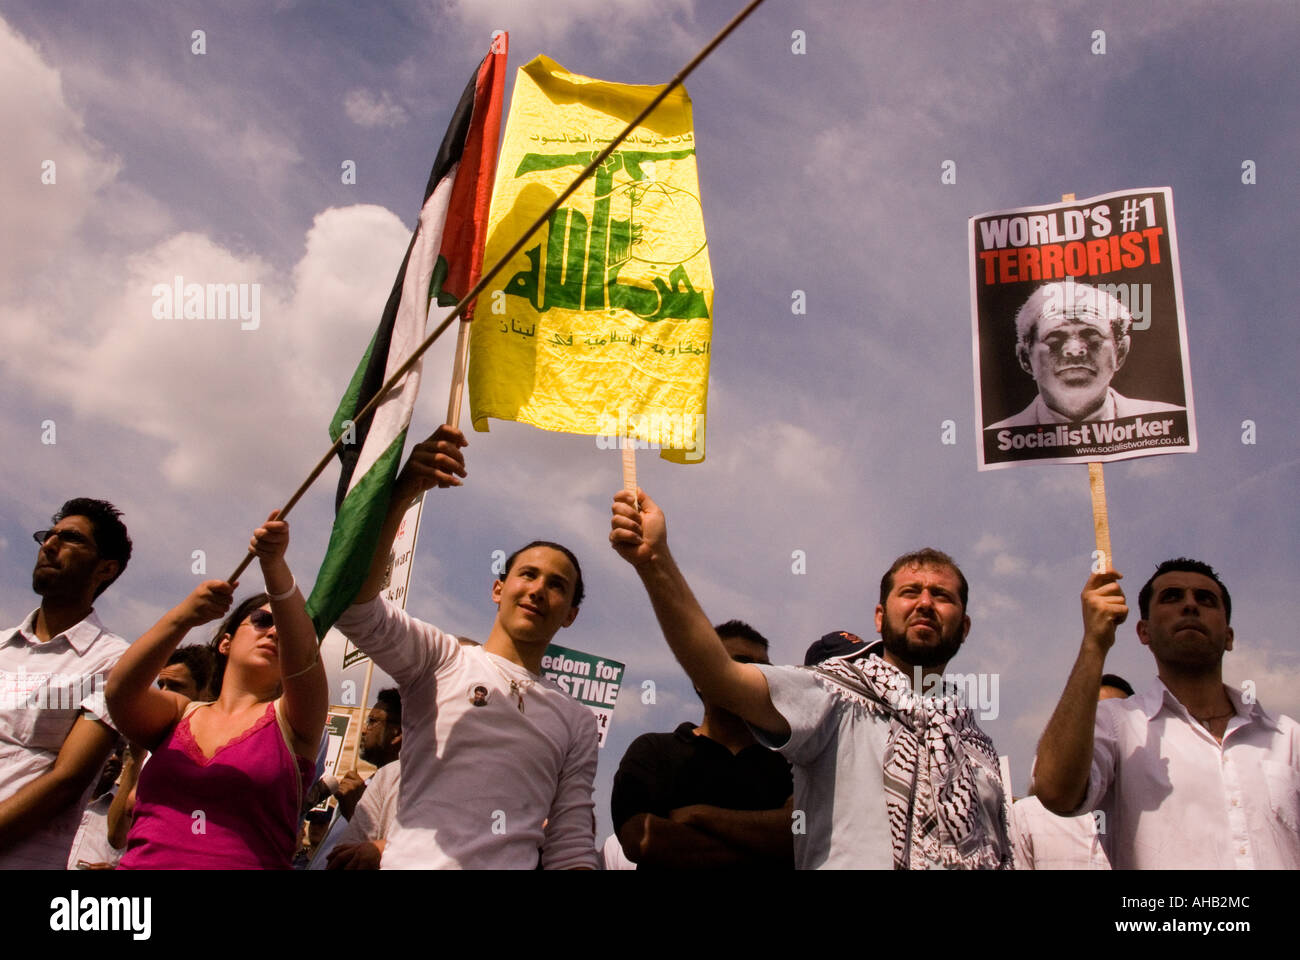 Stop the War Demo, march and protest against the war in Lebanon with Israel, London, UK. 5 August 2006. - Stock Image